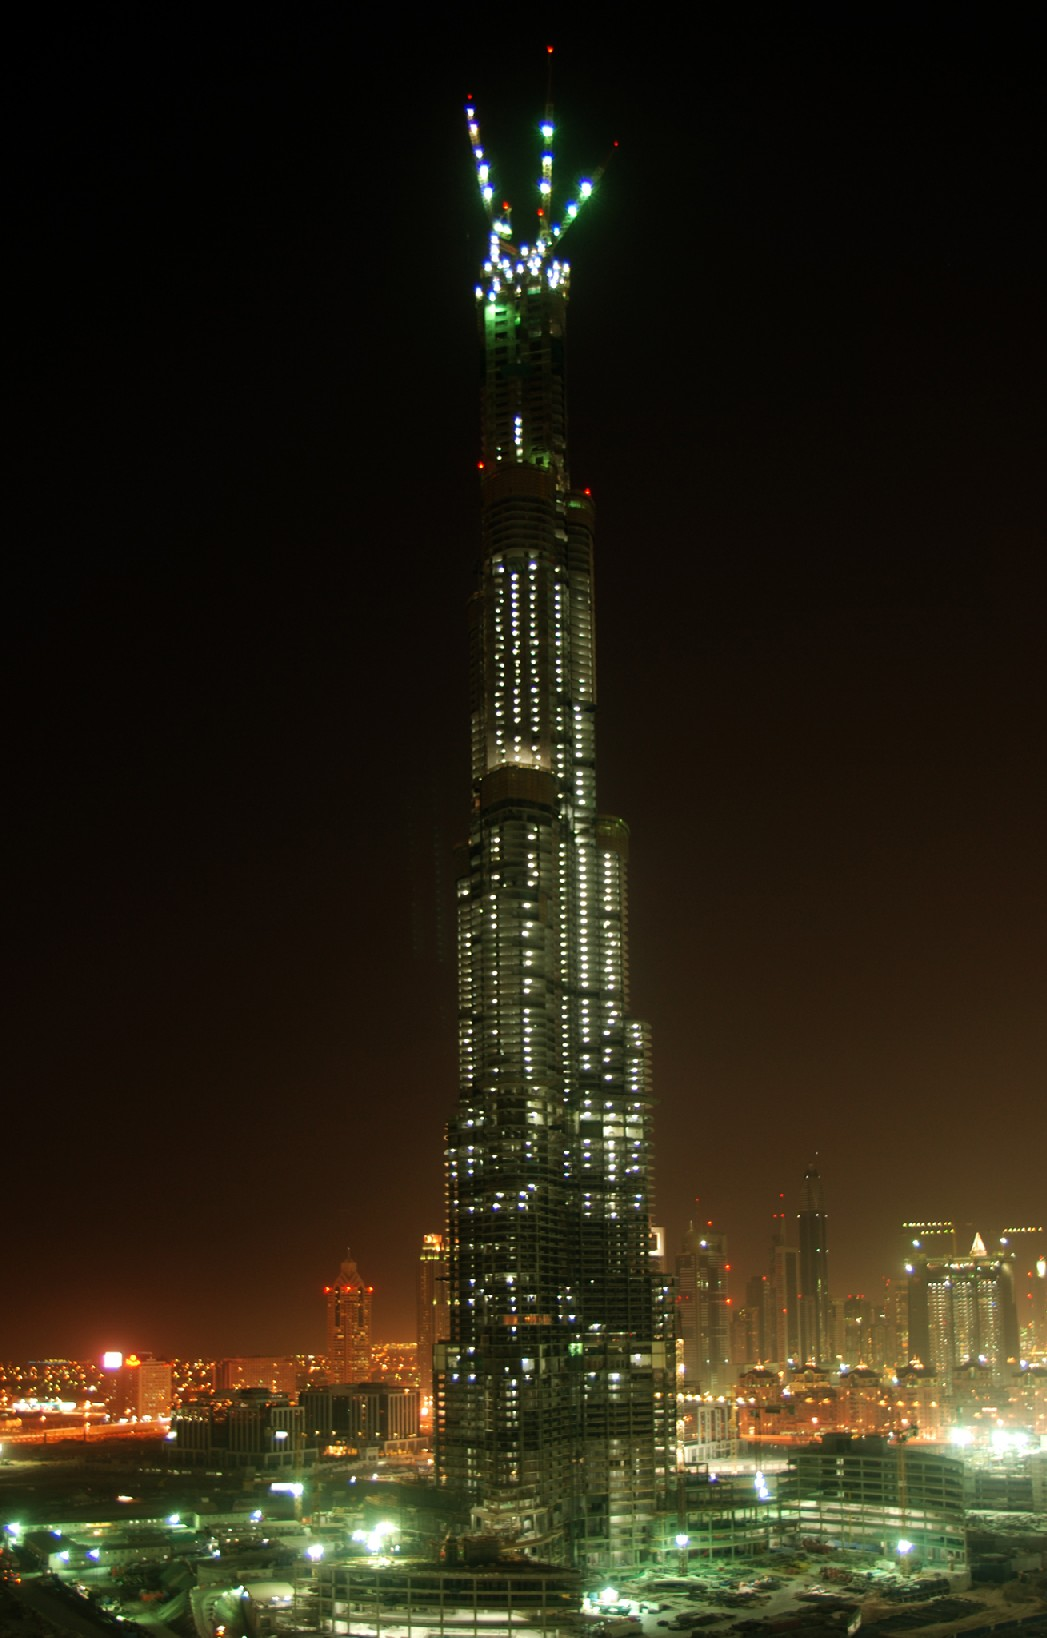 Burj Dubai - The Tallest Skyscrapers in the World